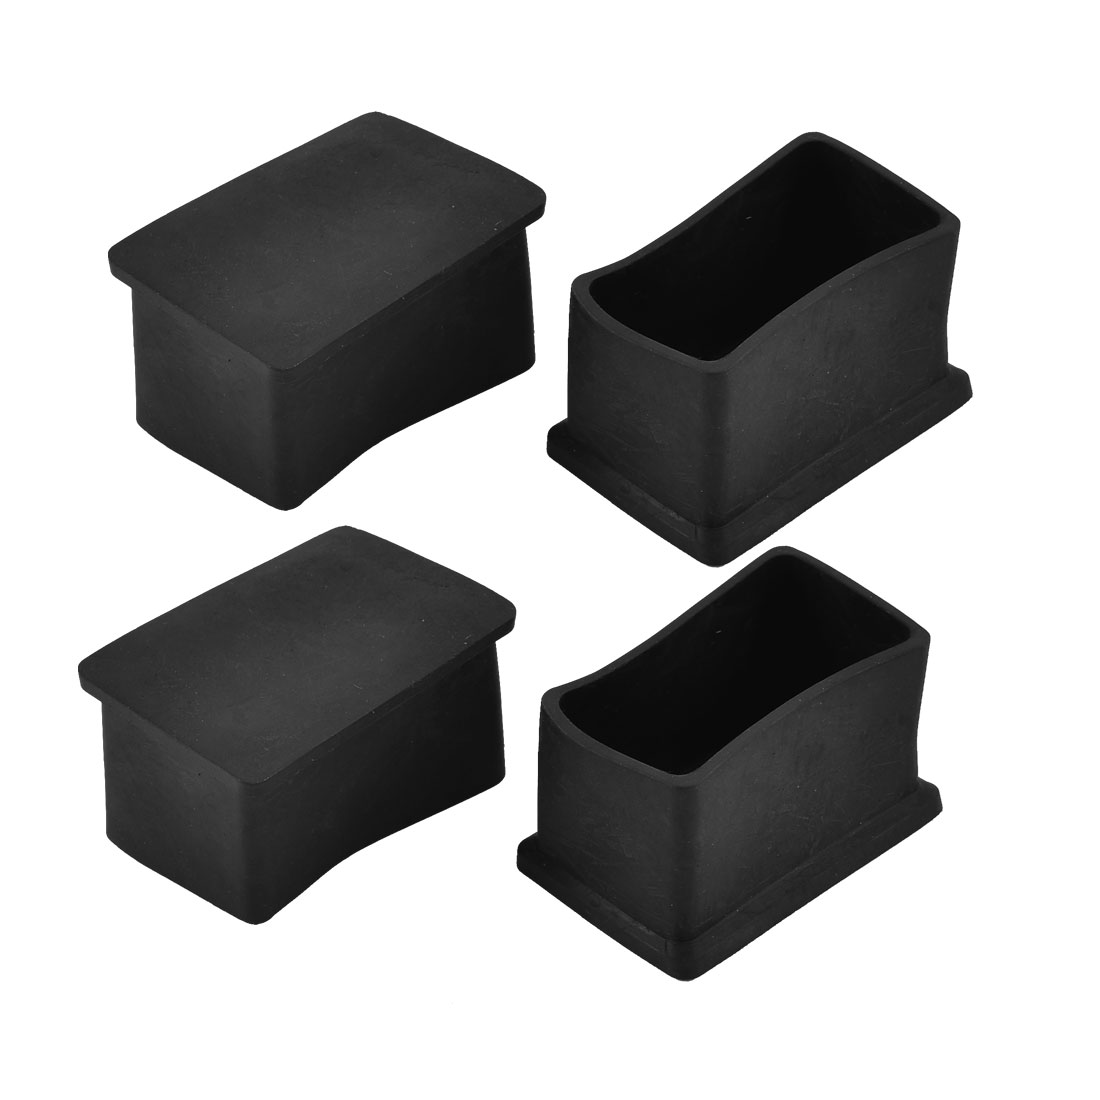 50mm x 30mm Rubber Square Shaped Furniture Table Foot Cover Caps Black 4pcs